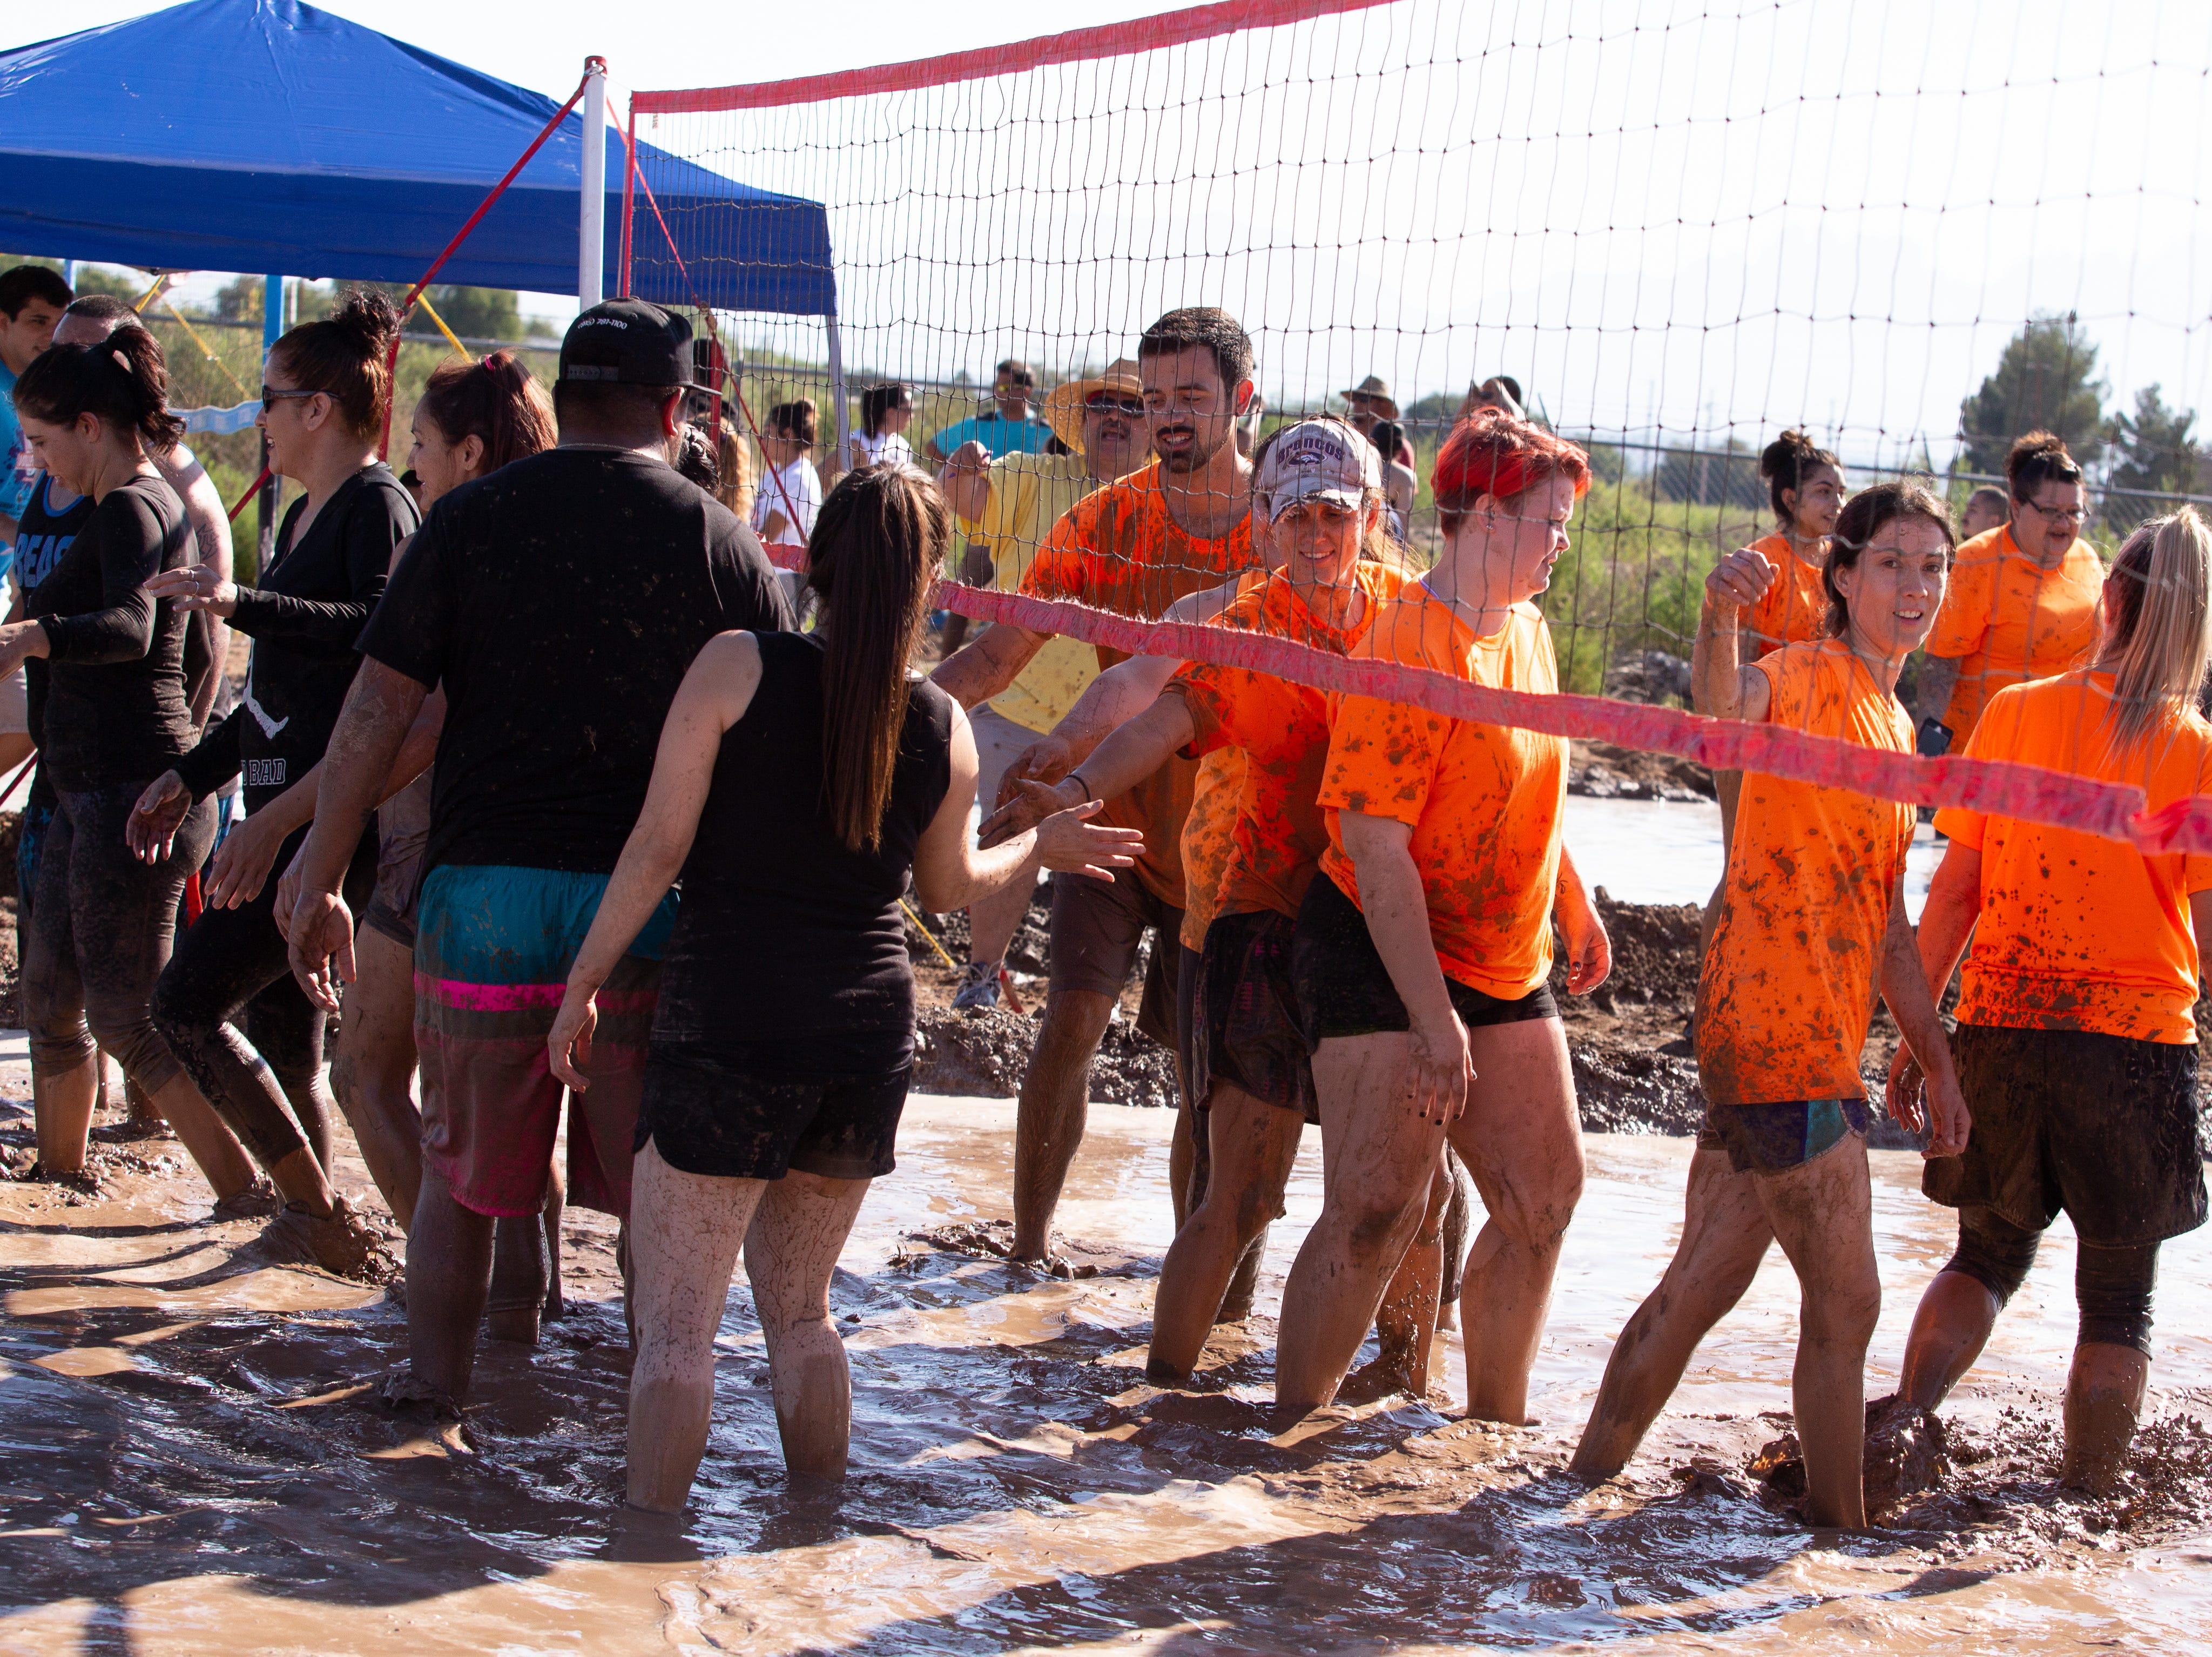 Sportsmanship was on display at the 9th Annual Mudd Volleyball tournament on September 8, 2018.